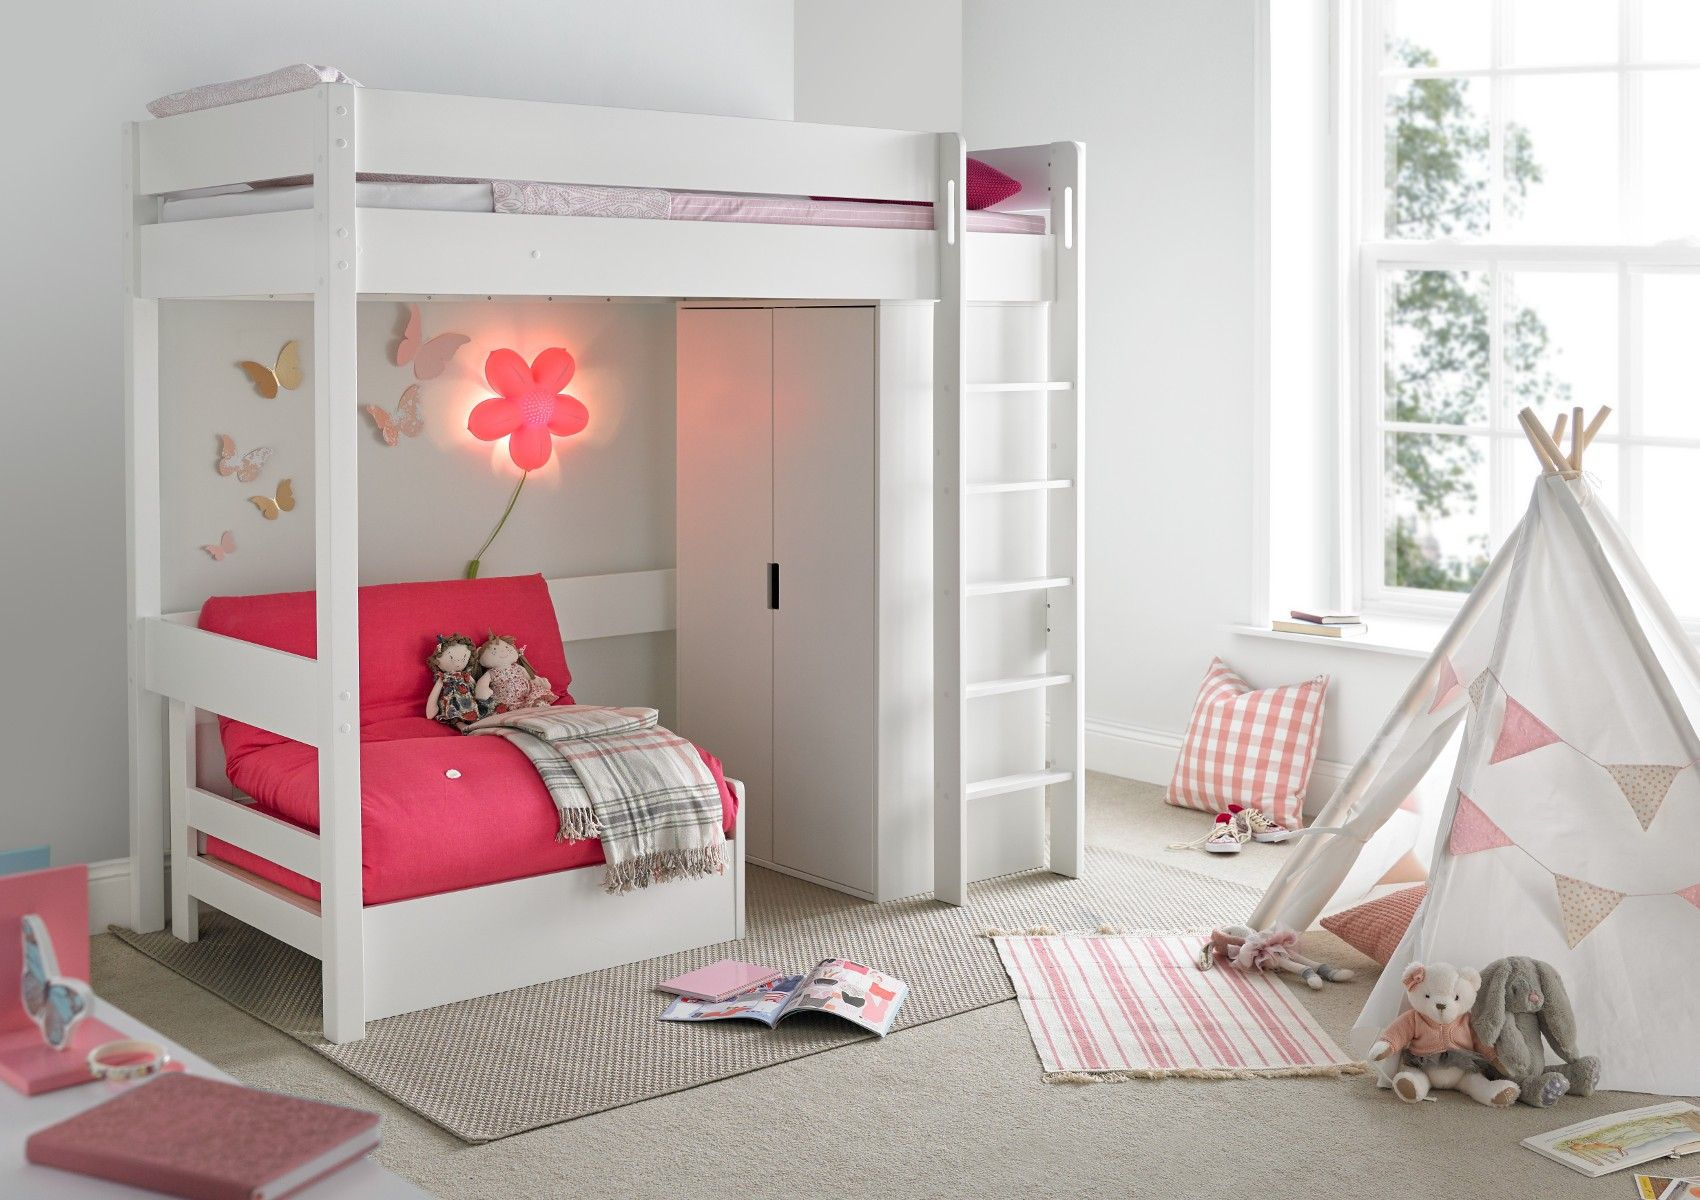 Modena High Sleeper Bed Frame With Compact Wardrobe Pink Chair